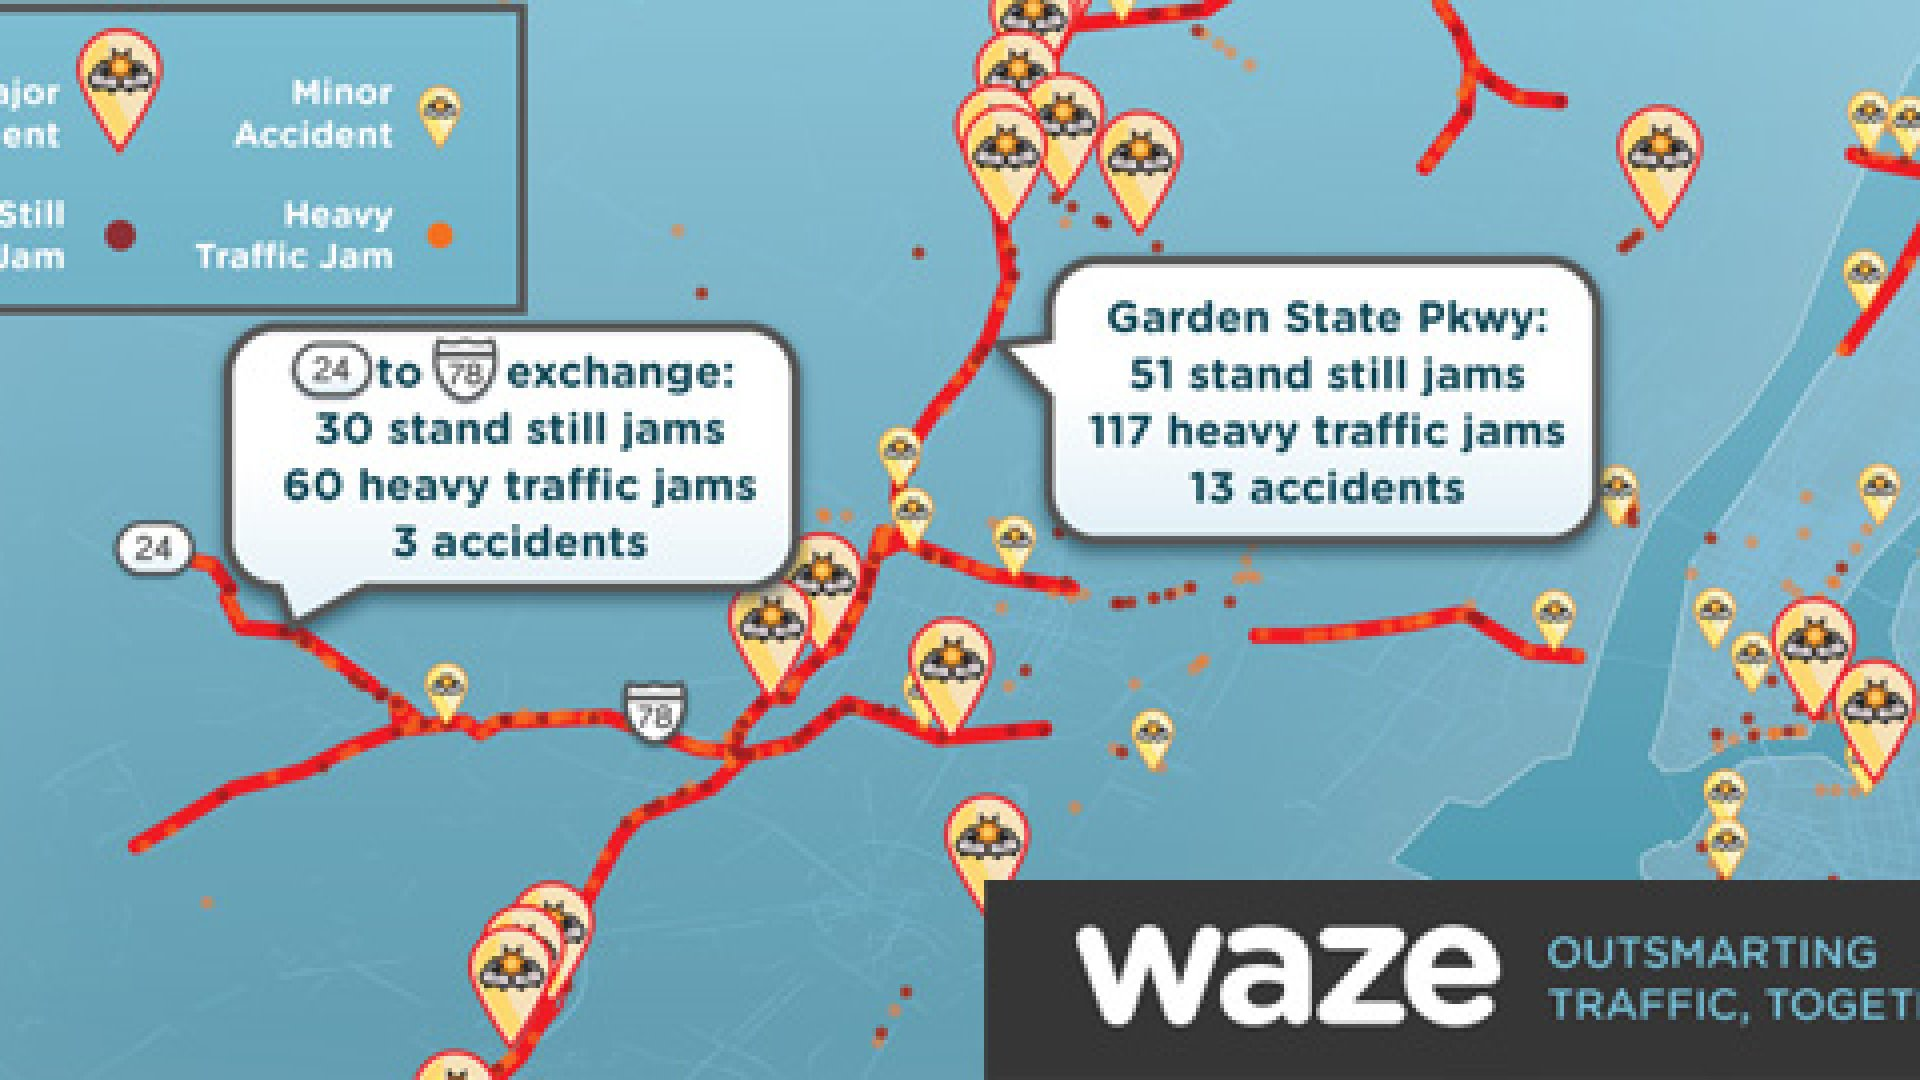 The Real Reason Google Wants Waze: Your Data